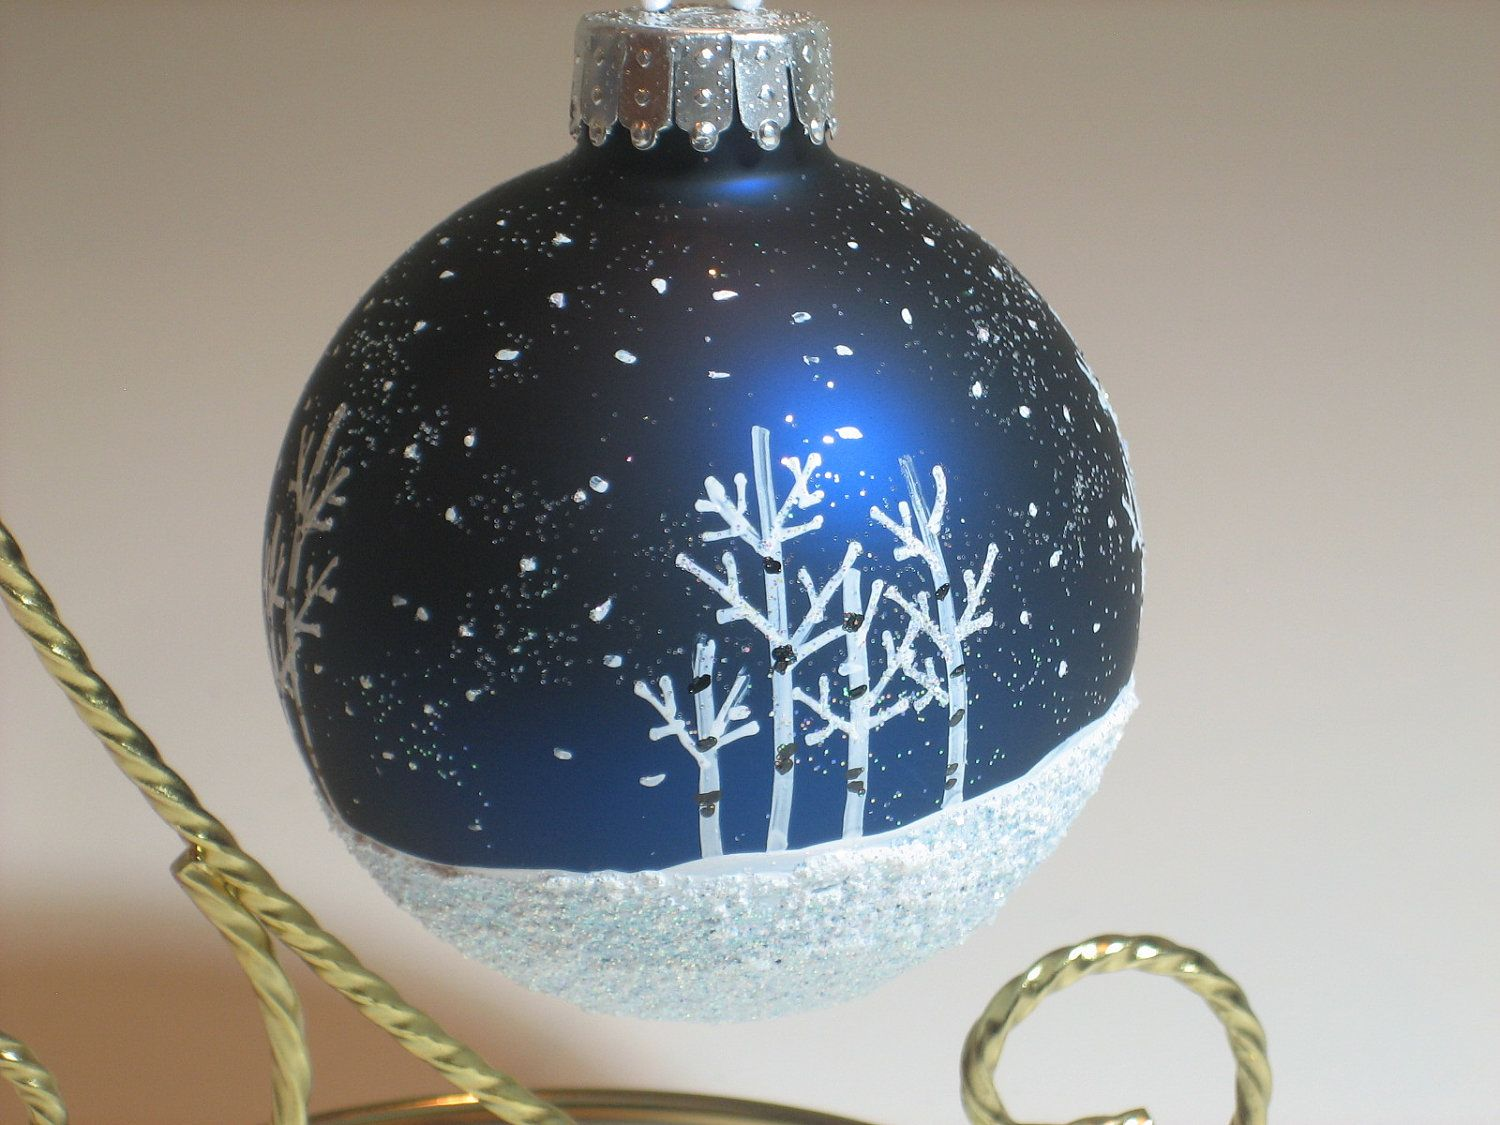 Hand Painted Glass Christmas Ball Ornament Painted Christmas Ornaments Christmas Ornaments Christmas Crafts For Gifts